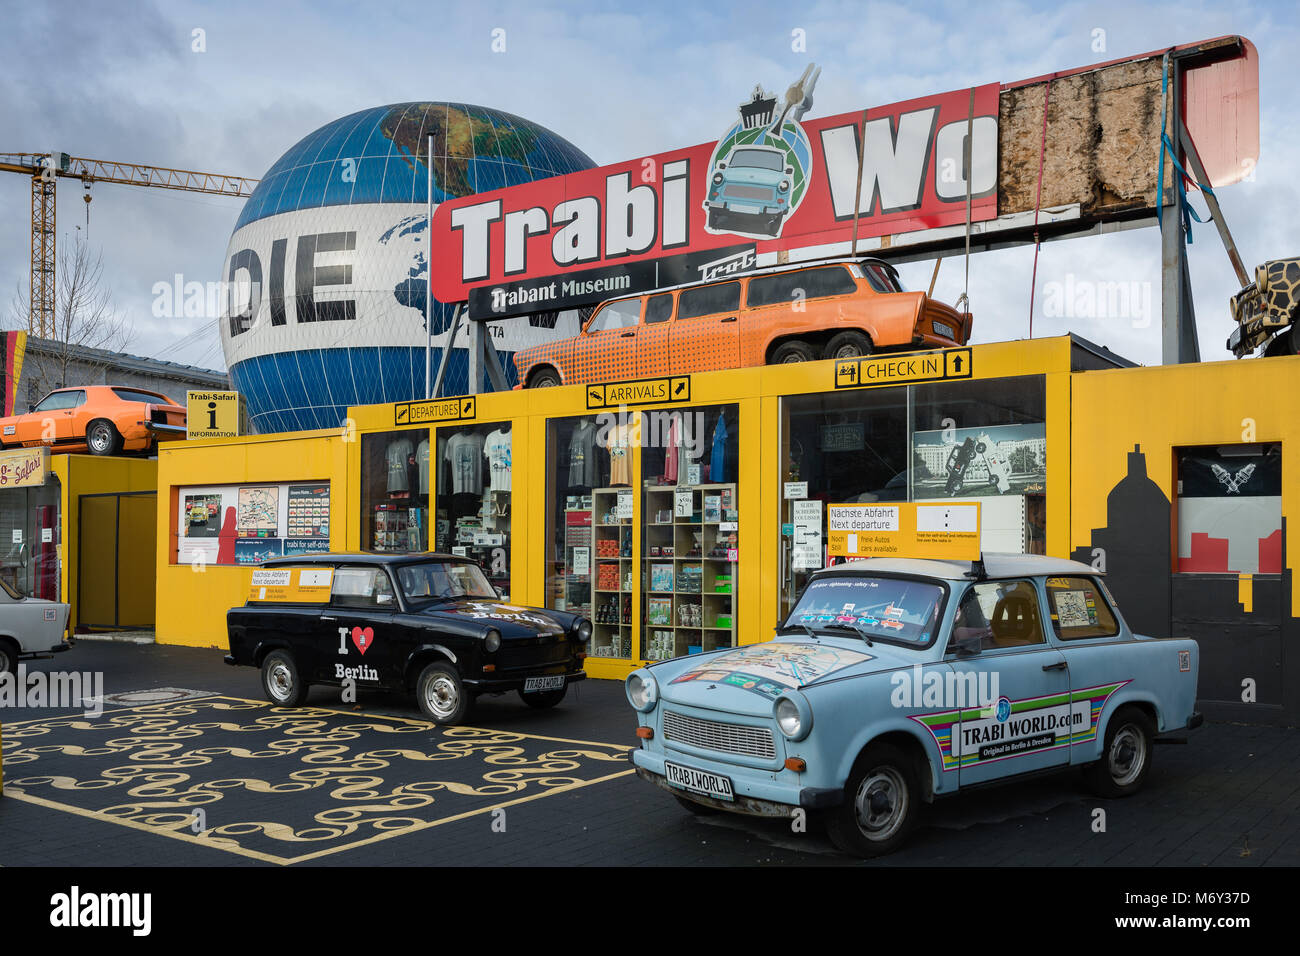 Trabant World, Zimmerstrasse, Mitte, Berlin, Germany - Stock Image